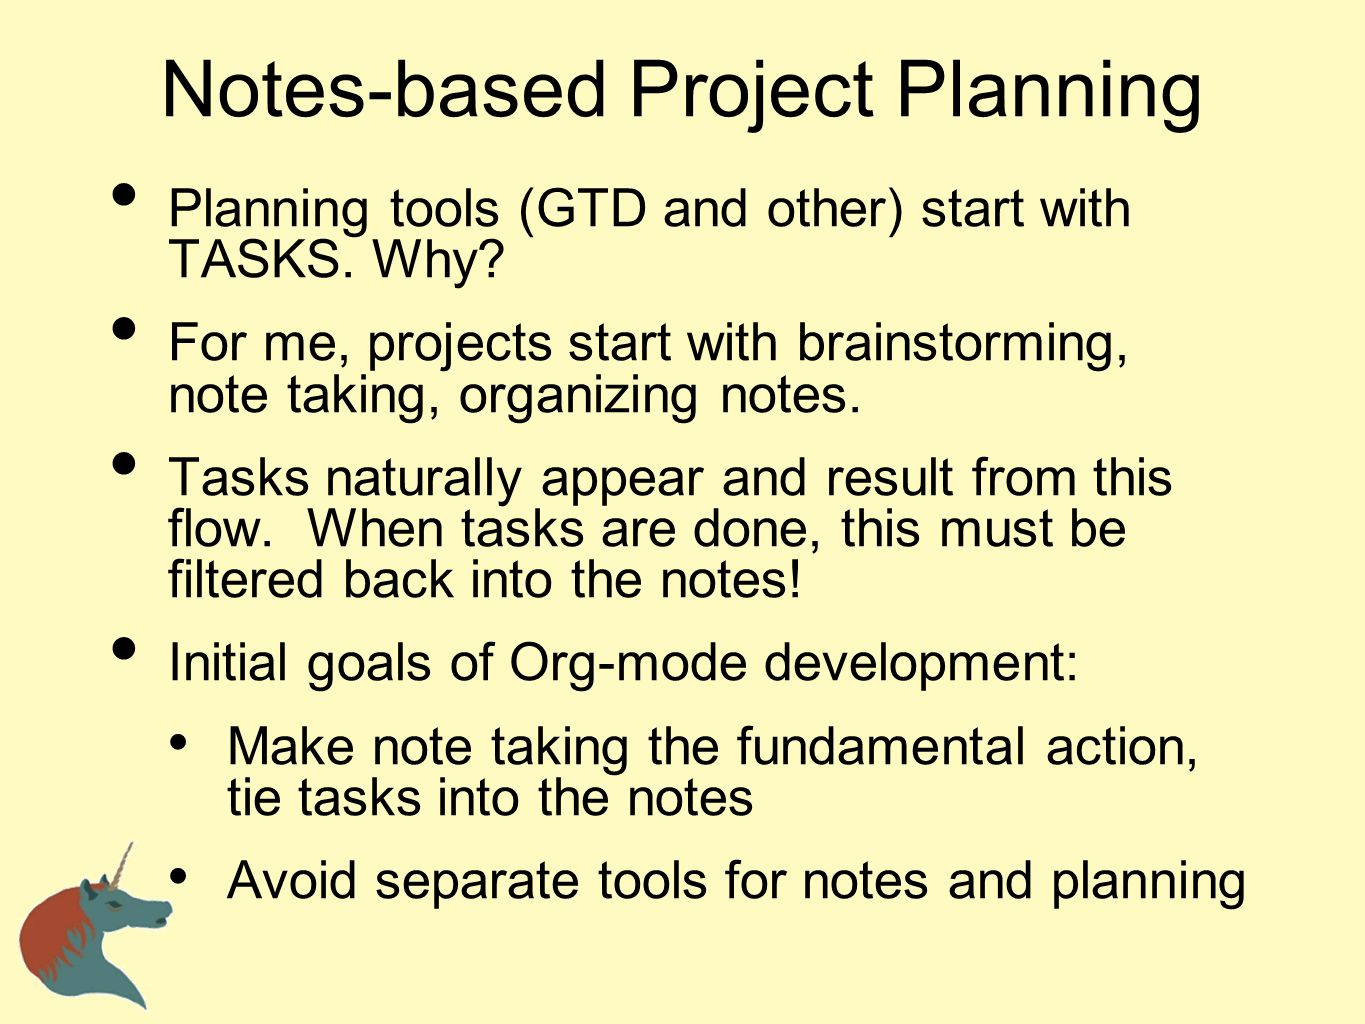 Notes-based Project Planning